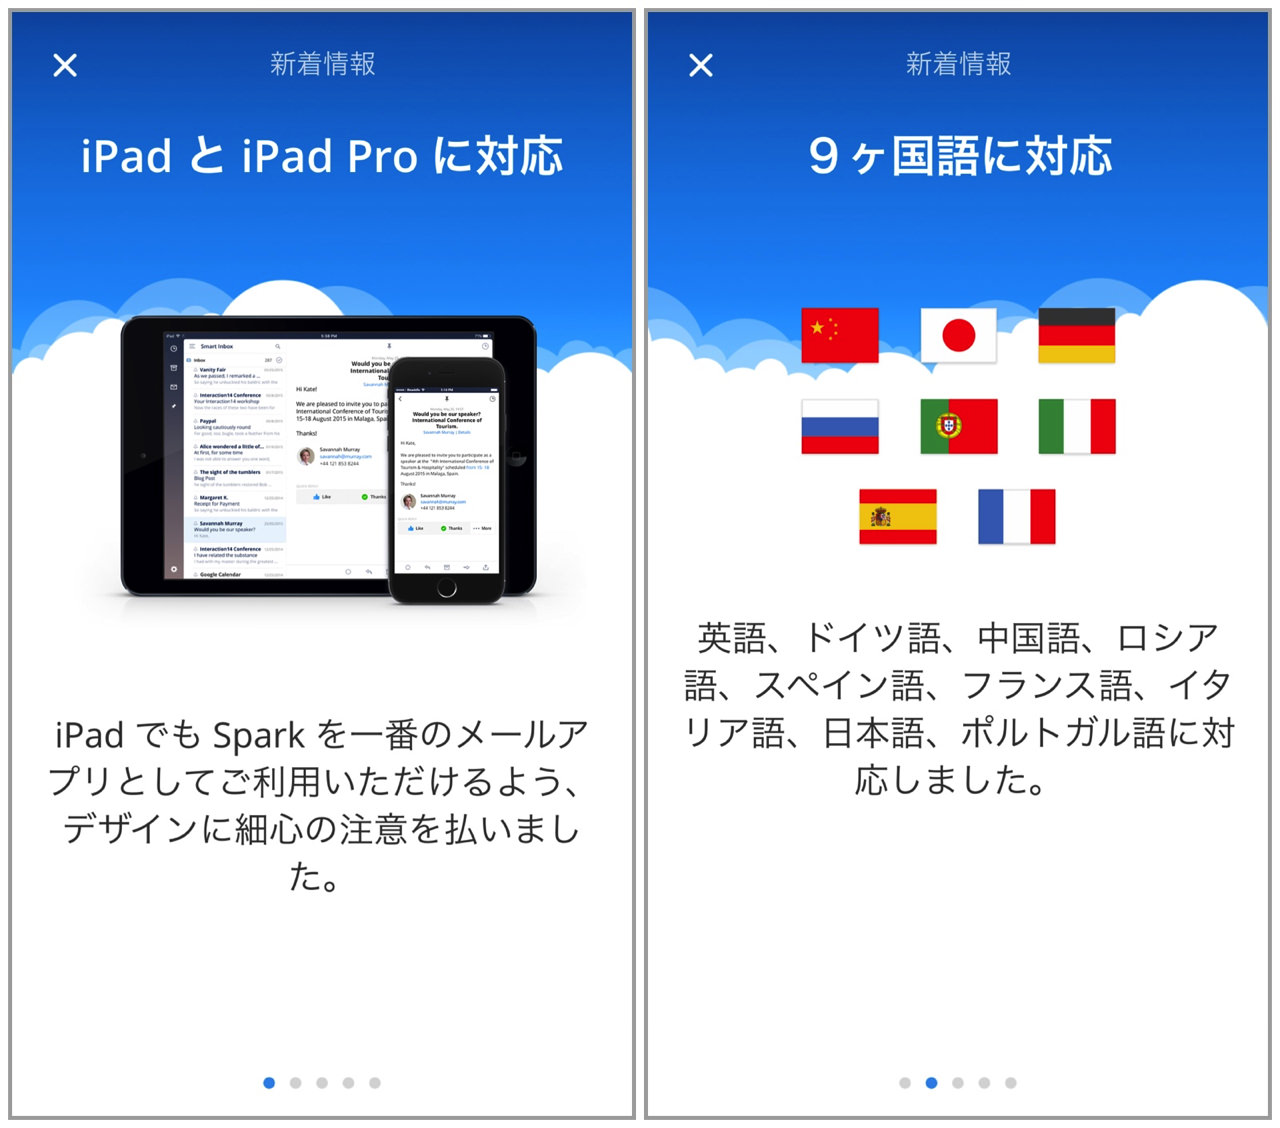 Spark for ipad release3